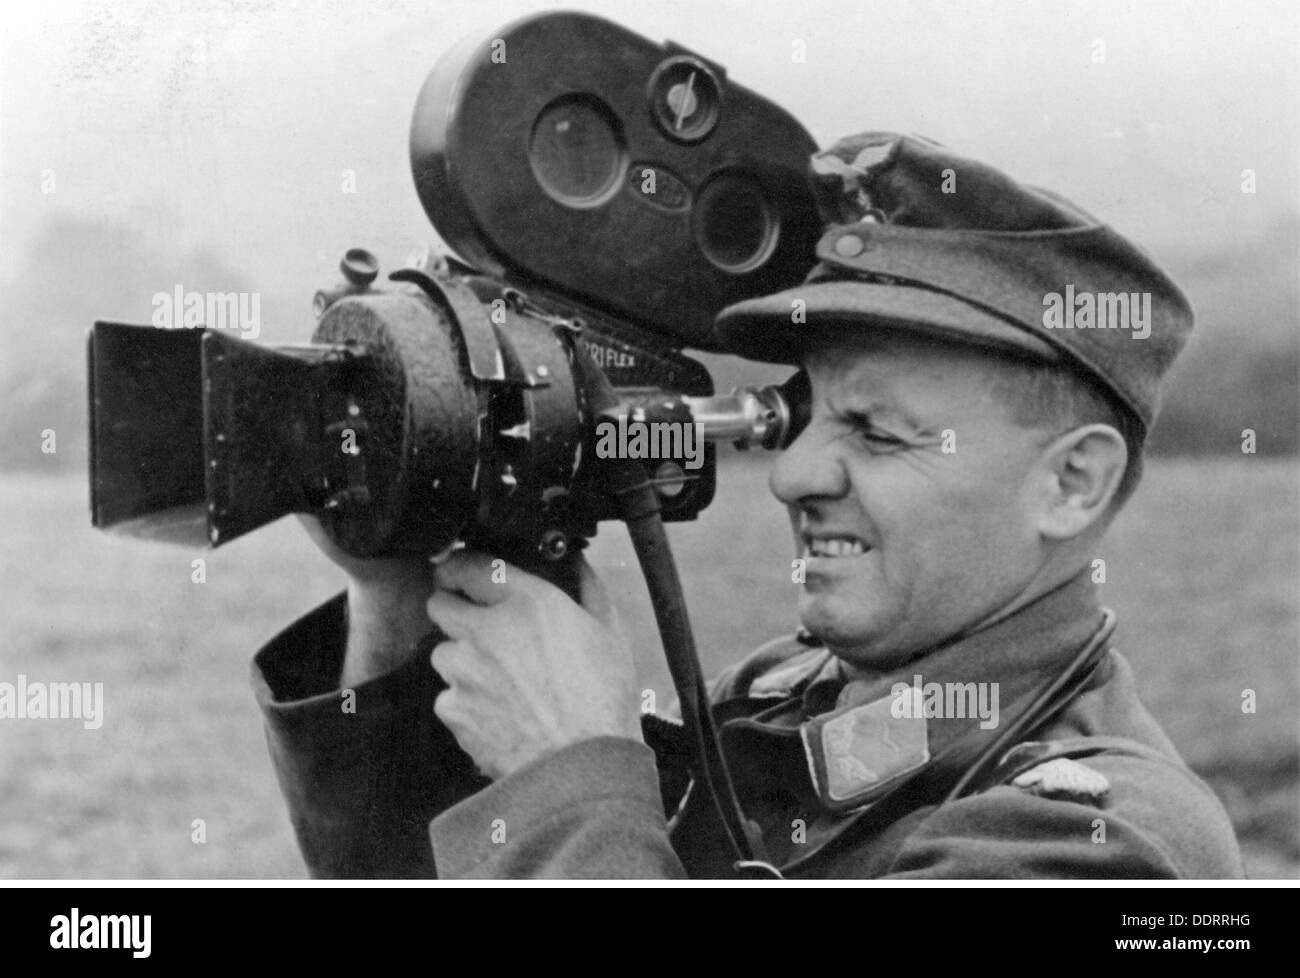 Second World War / WWII, propaganda, German war correspondent with cine camera, picture postcard, 1944, Additional-Rights-Clearences-NA - Stock Image